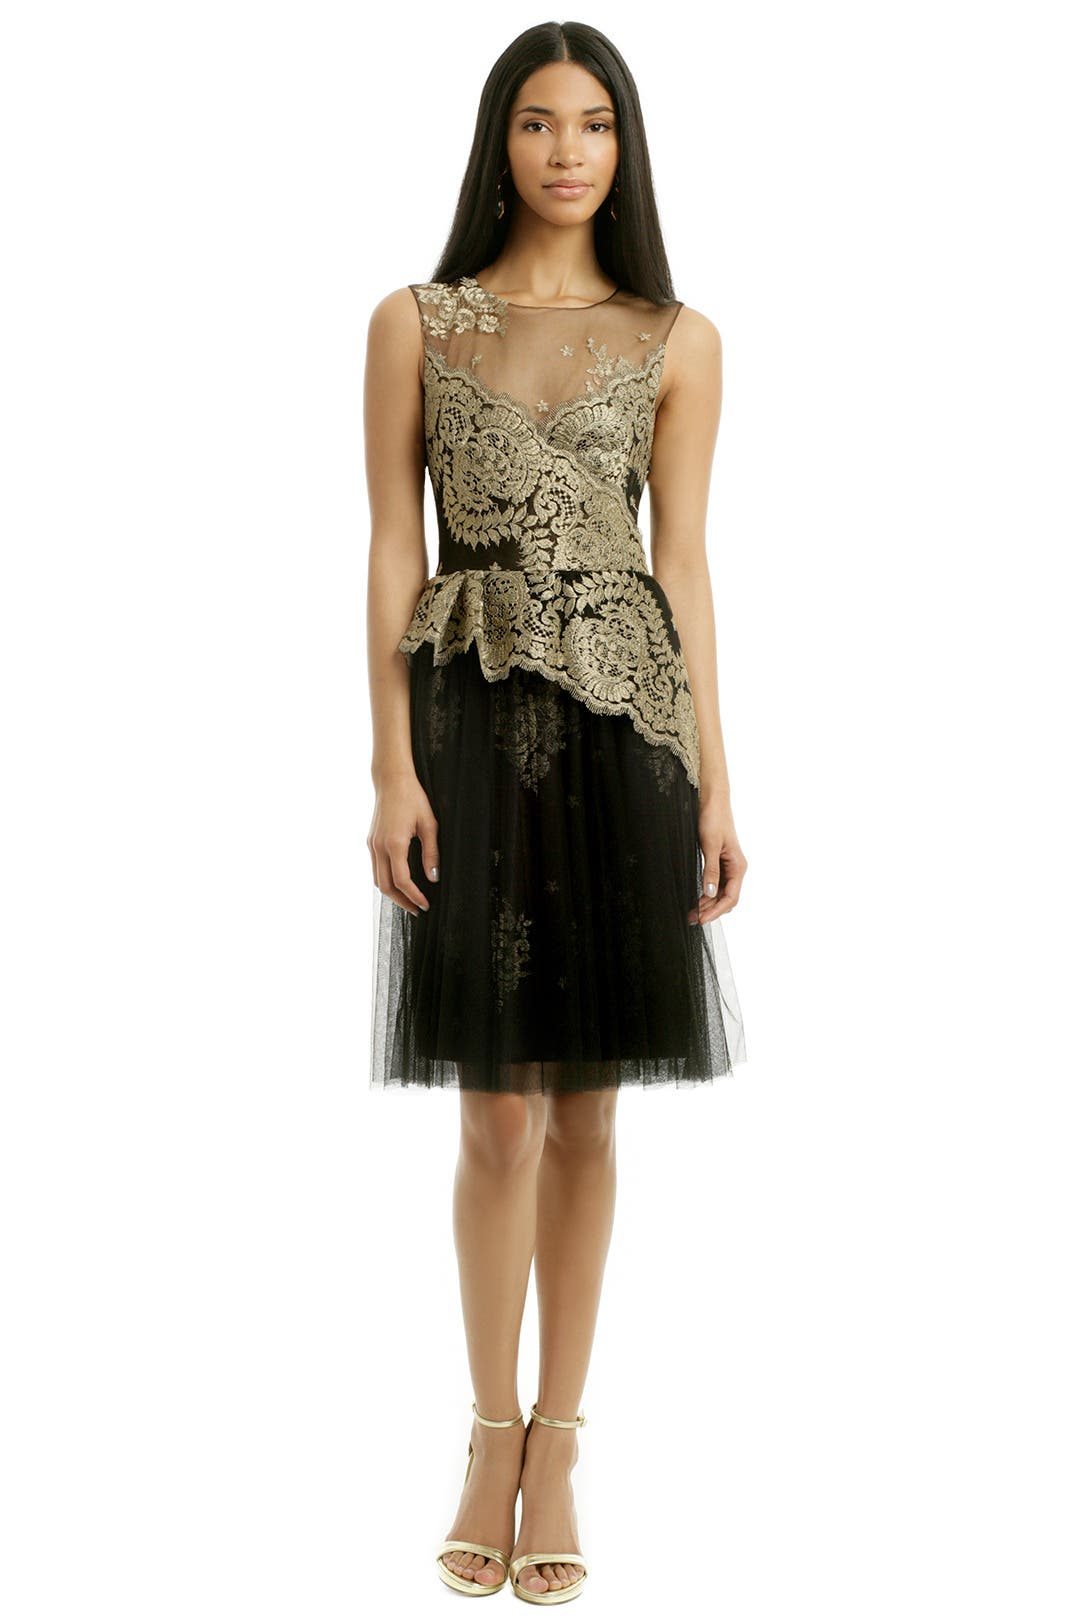 Laurel dress by marchesa notte for 35 rent the runway for Rent dress for wedding guest